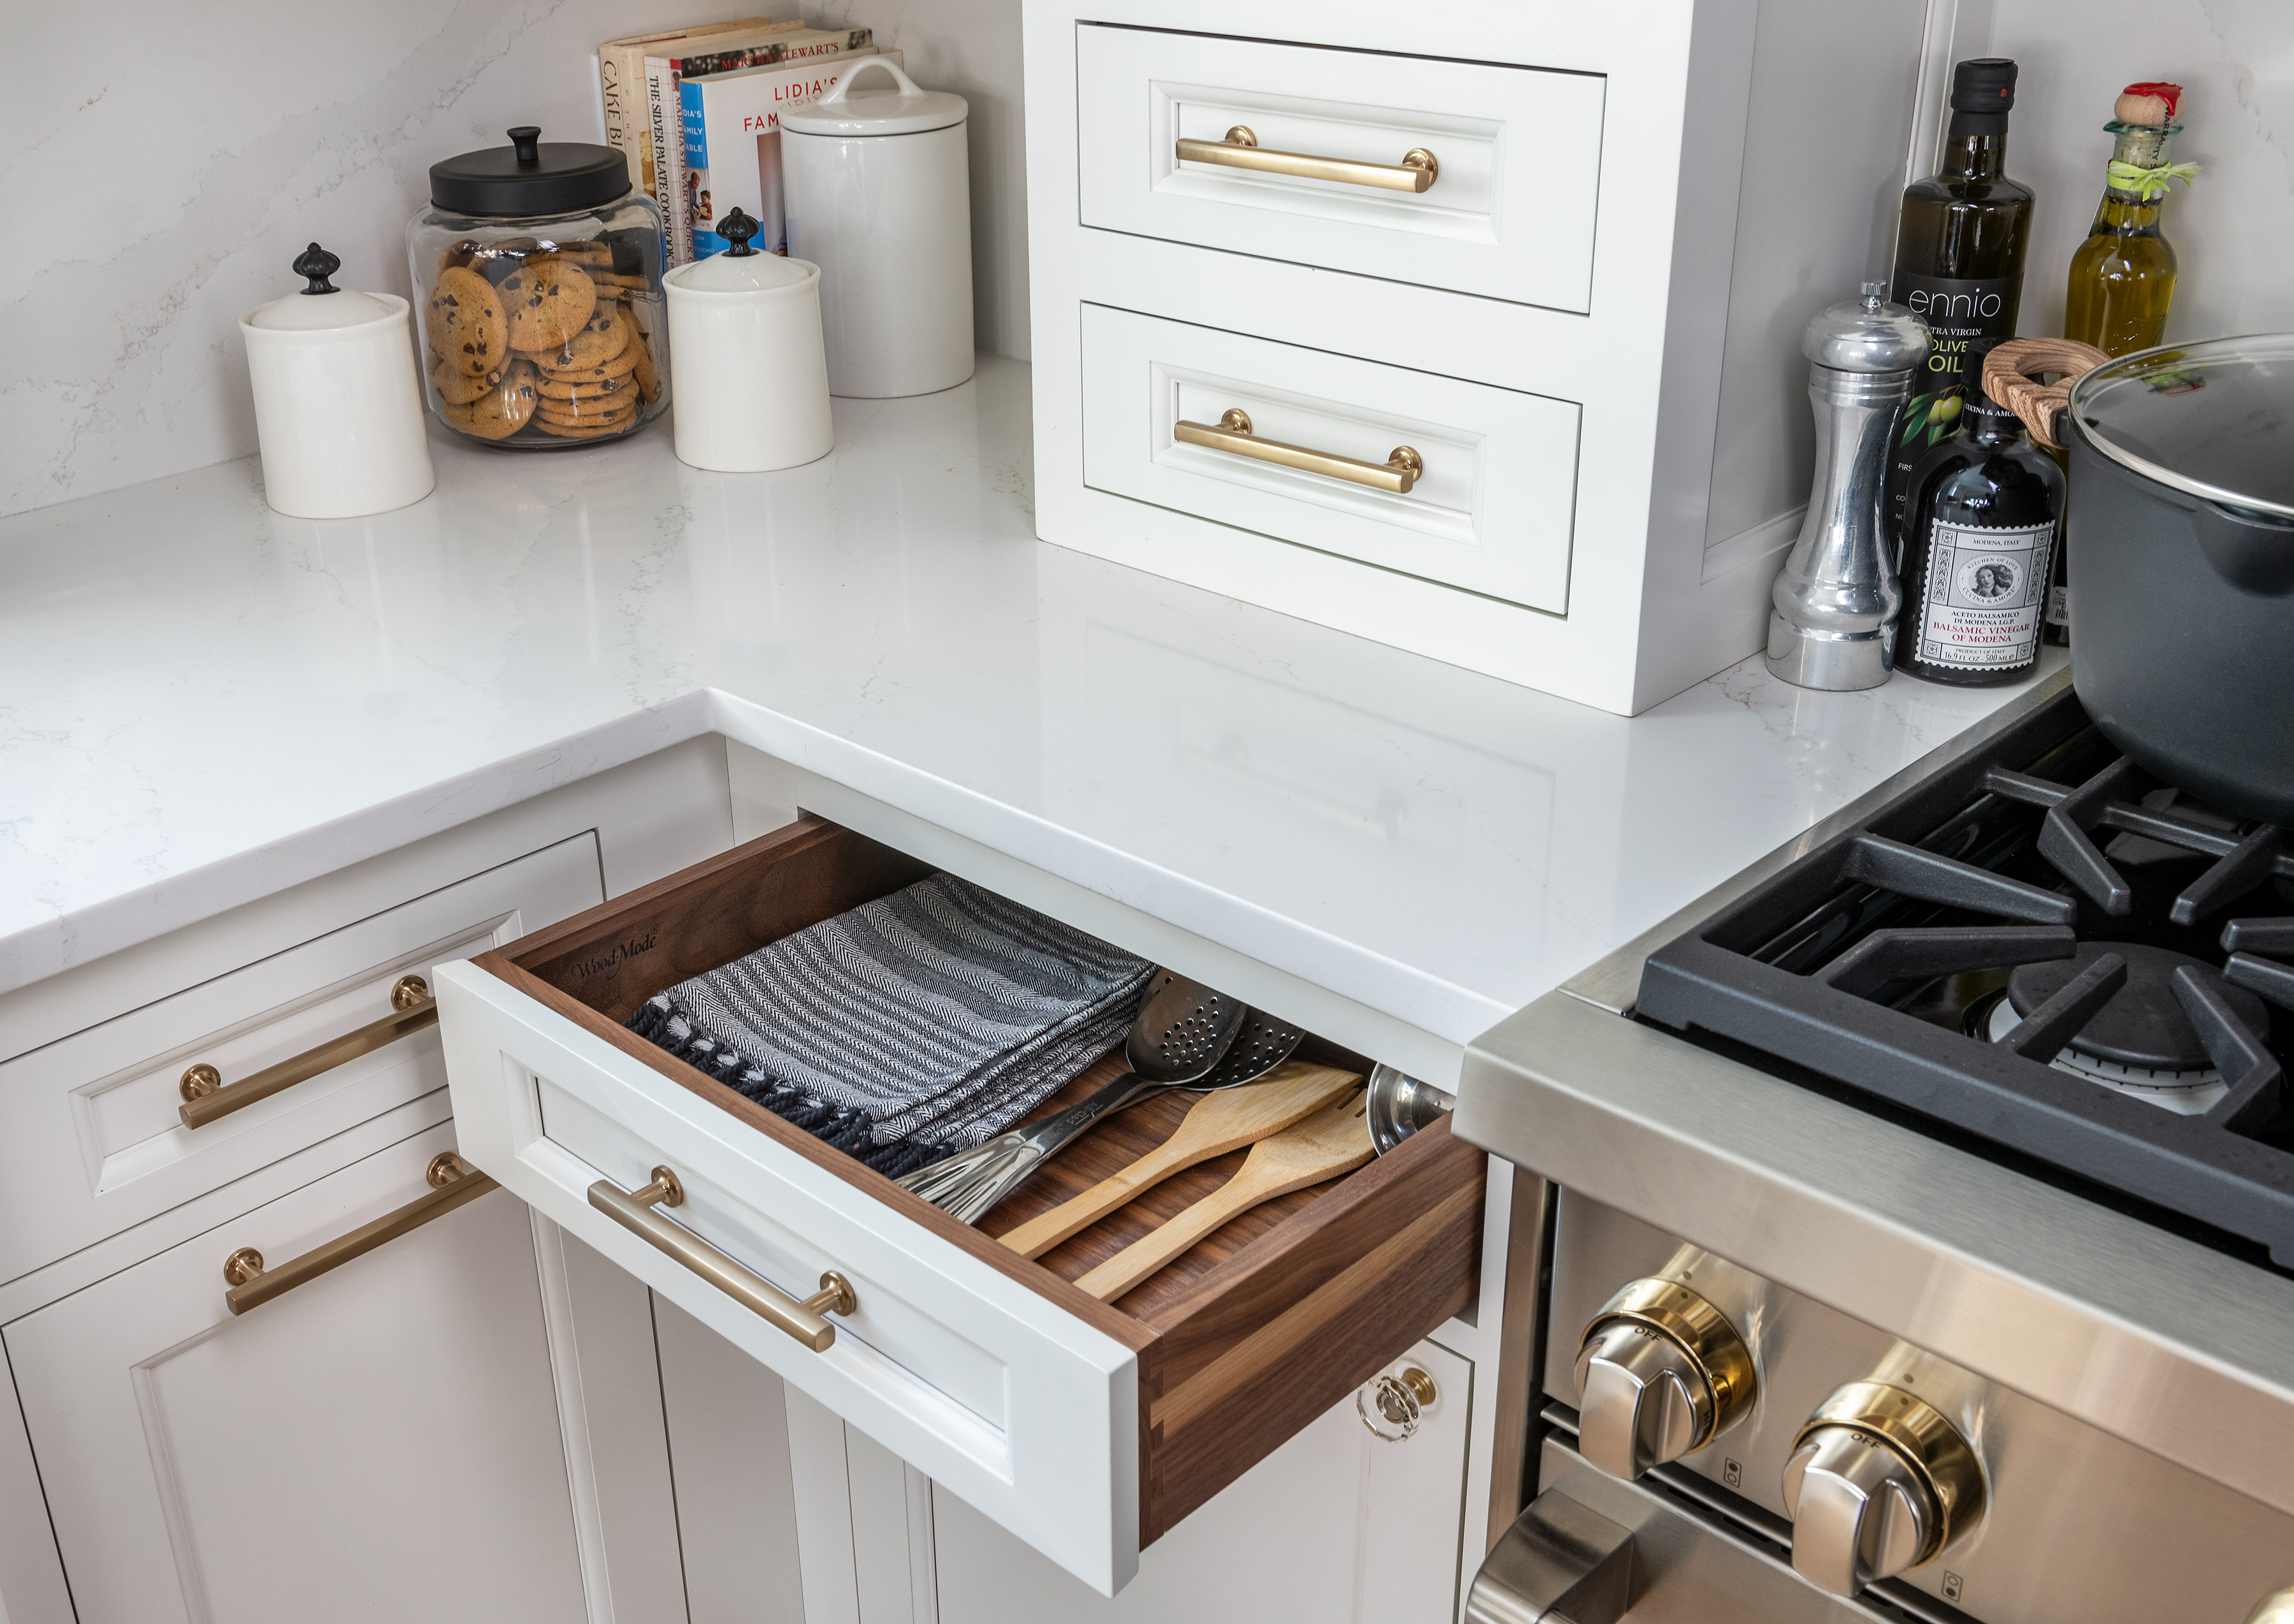 A close up of white kitchen cabinets with a drawer open.